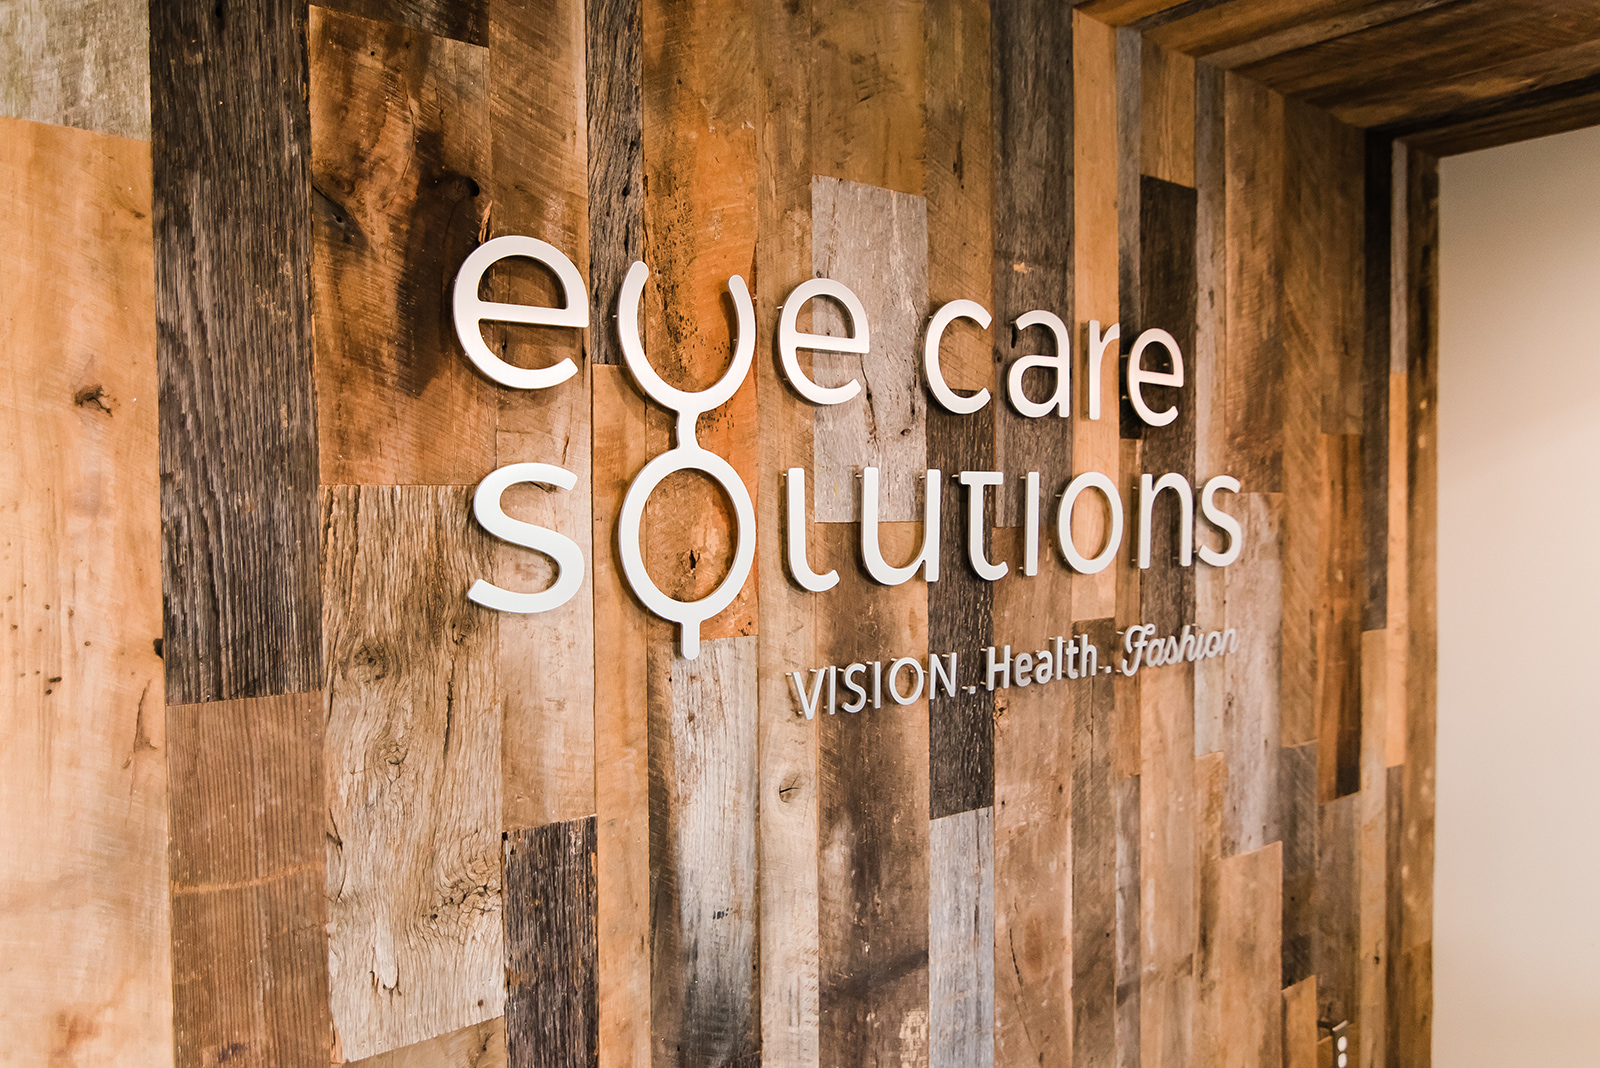 Eye Care Solutions